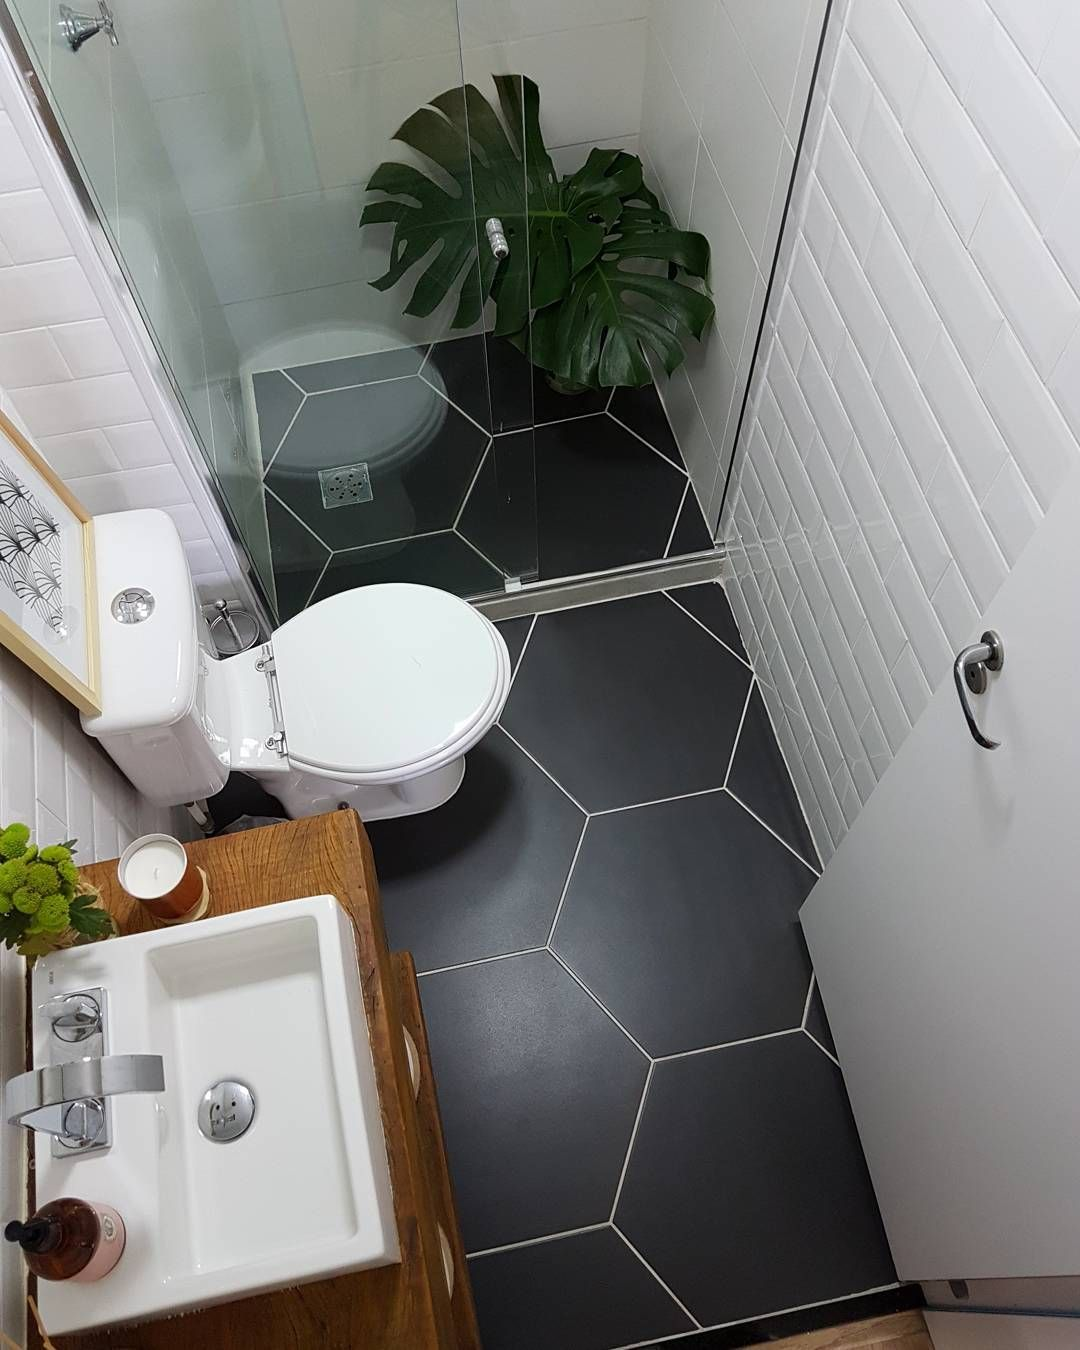 Tiny Bathroom With Zero Entry Shower Vessel Sink White Tile - Tiny-bathrooms